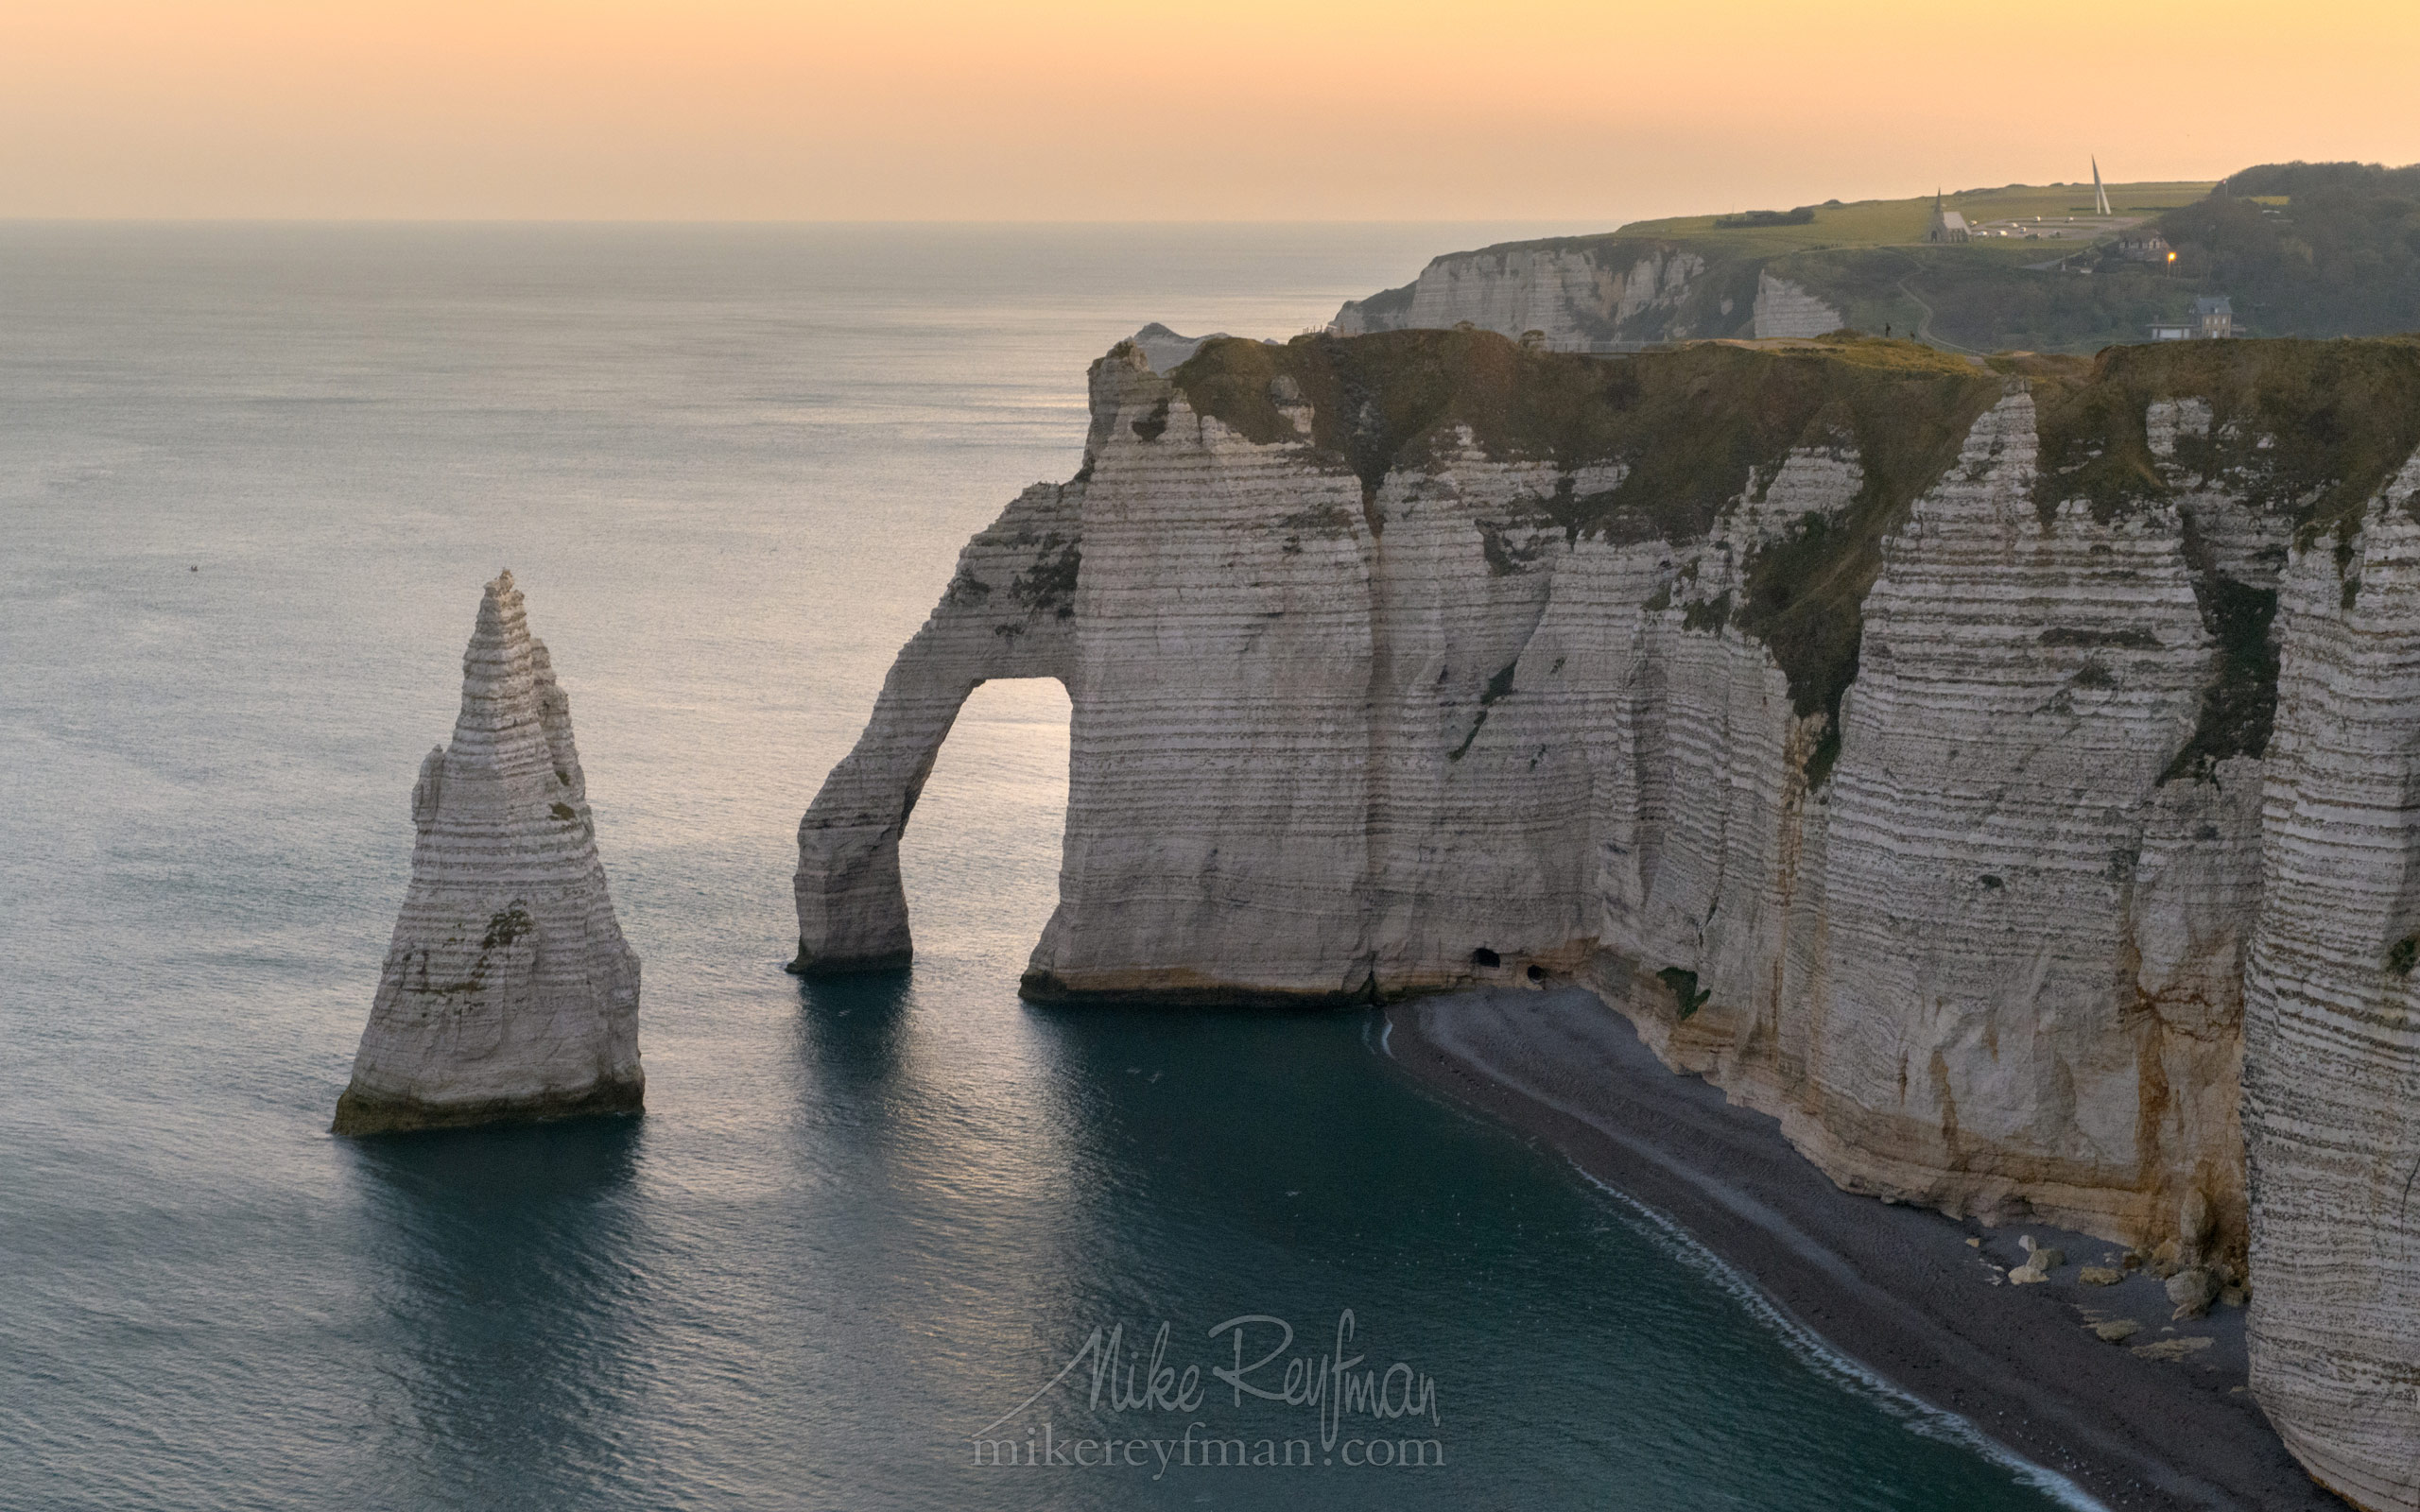 Arch Porte d'Aval and L'Aiguille - the Needle. Cote d'Albatre – The Alabaster Coast. Ertretat, Normandy, France ET1-MR50A0151 - White Chalk Cliffs and Arches of Alabaster Coast. Etretat, Upper Normandy, France - Mike Reyfman Photography